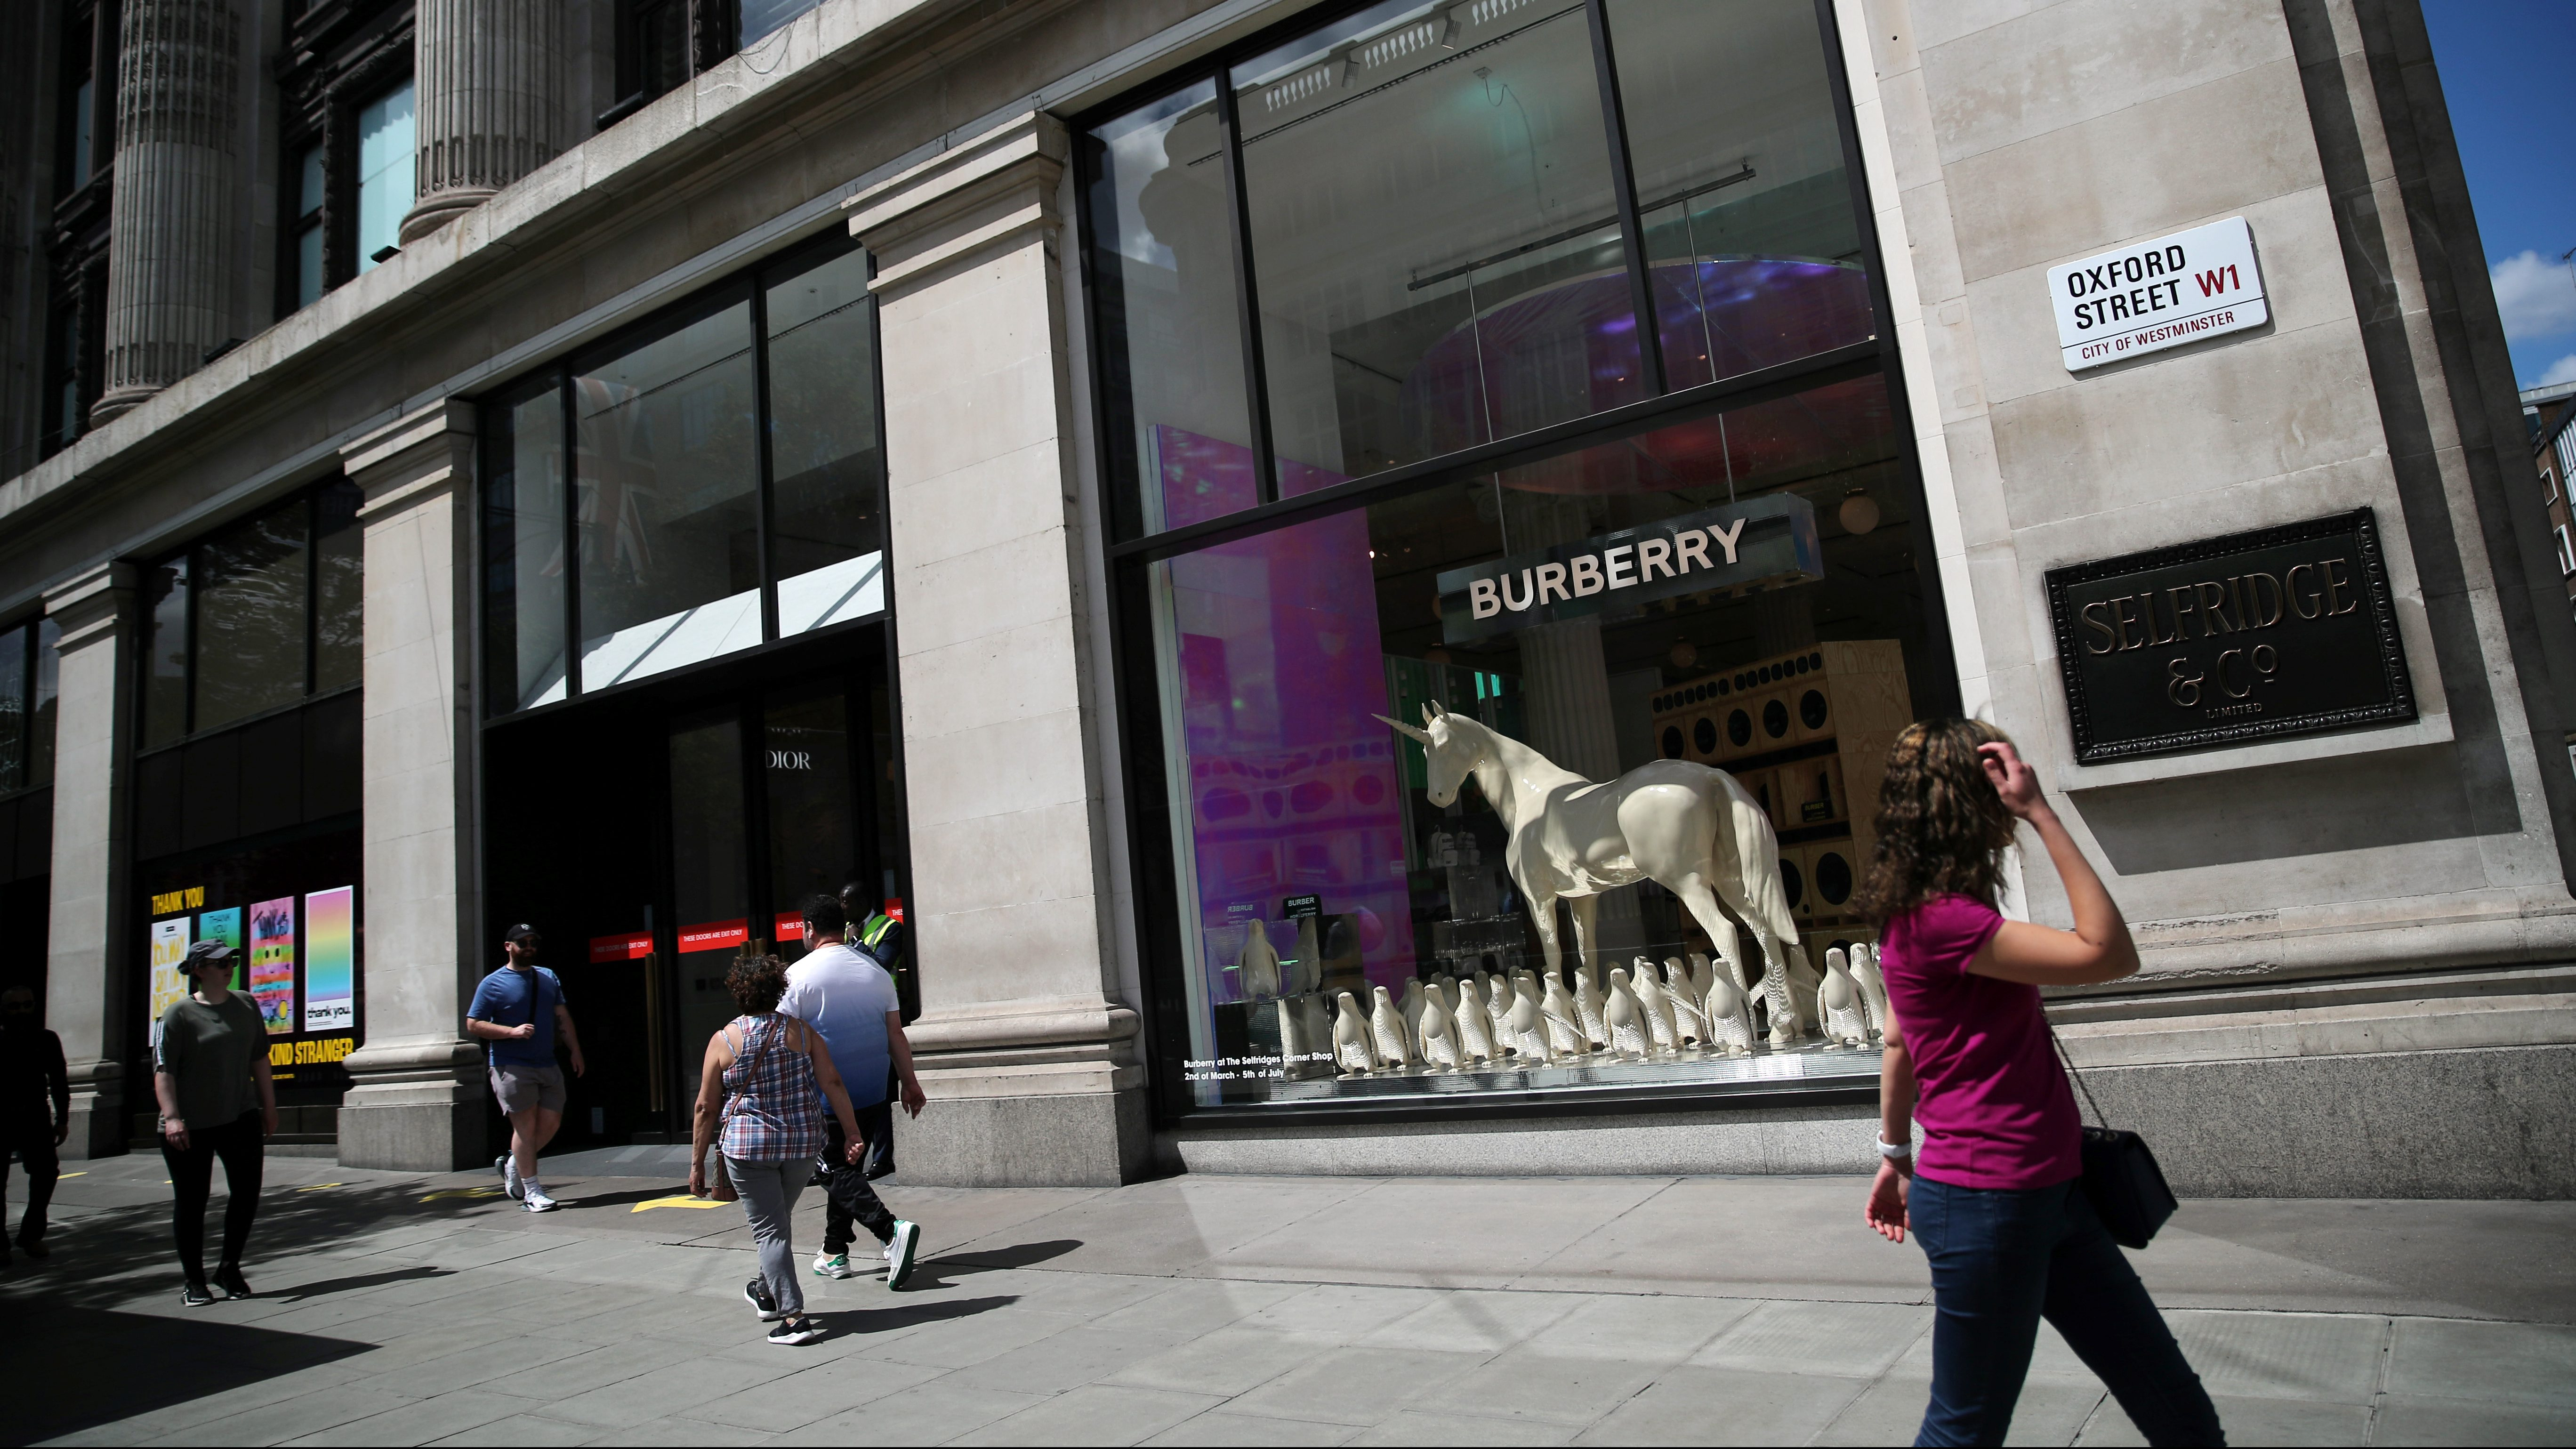 A Burberry display is pictured at Selfridges department store, amid the spread of the coronavirus disease (COVID-19) in Oxford Street in London, Britain June 14, 2020